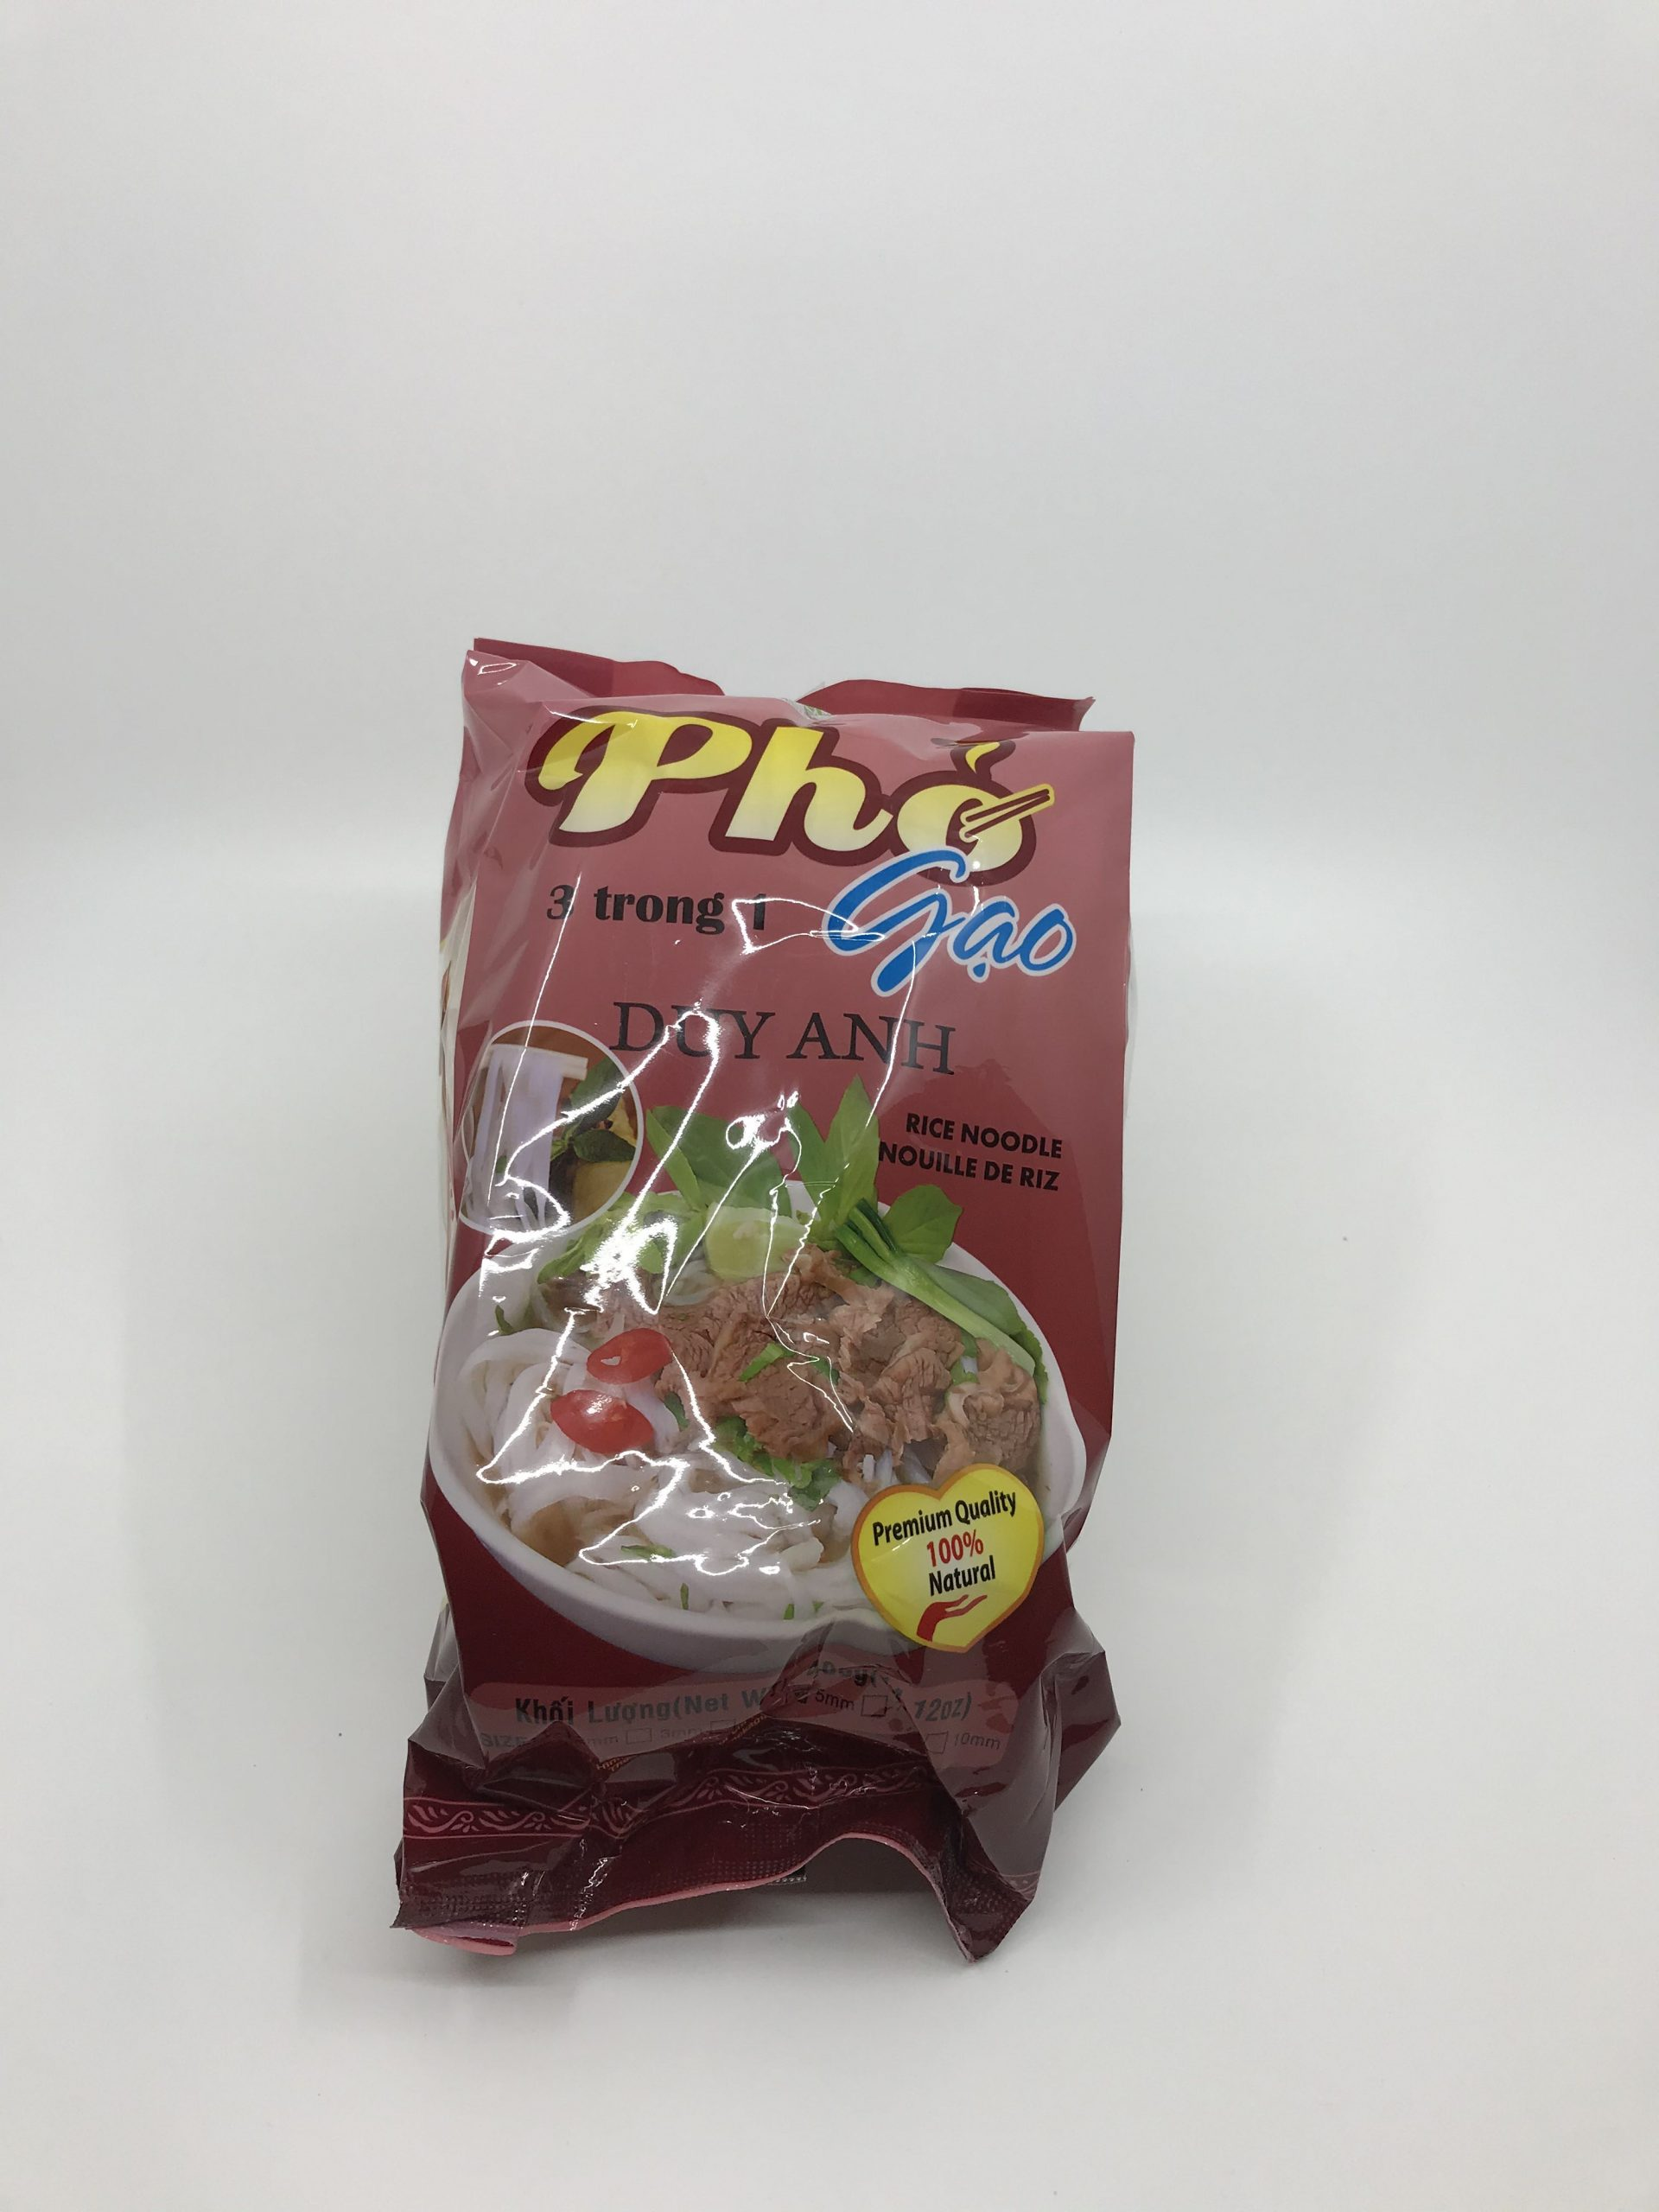 Rice noodle (pho gao) Duy Anh brand 5mm